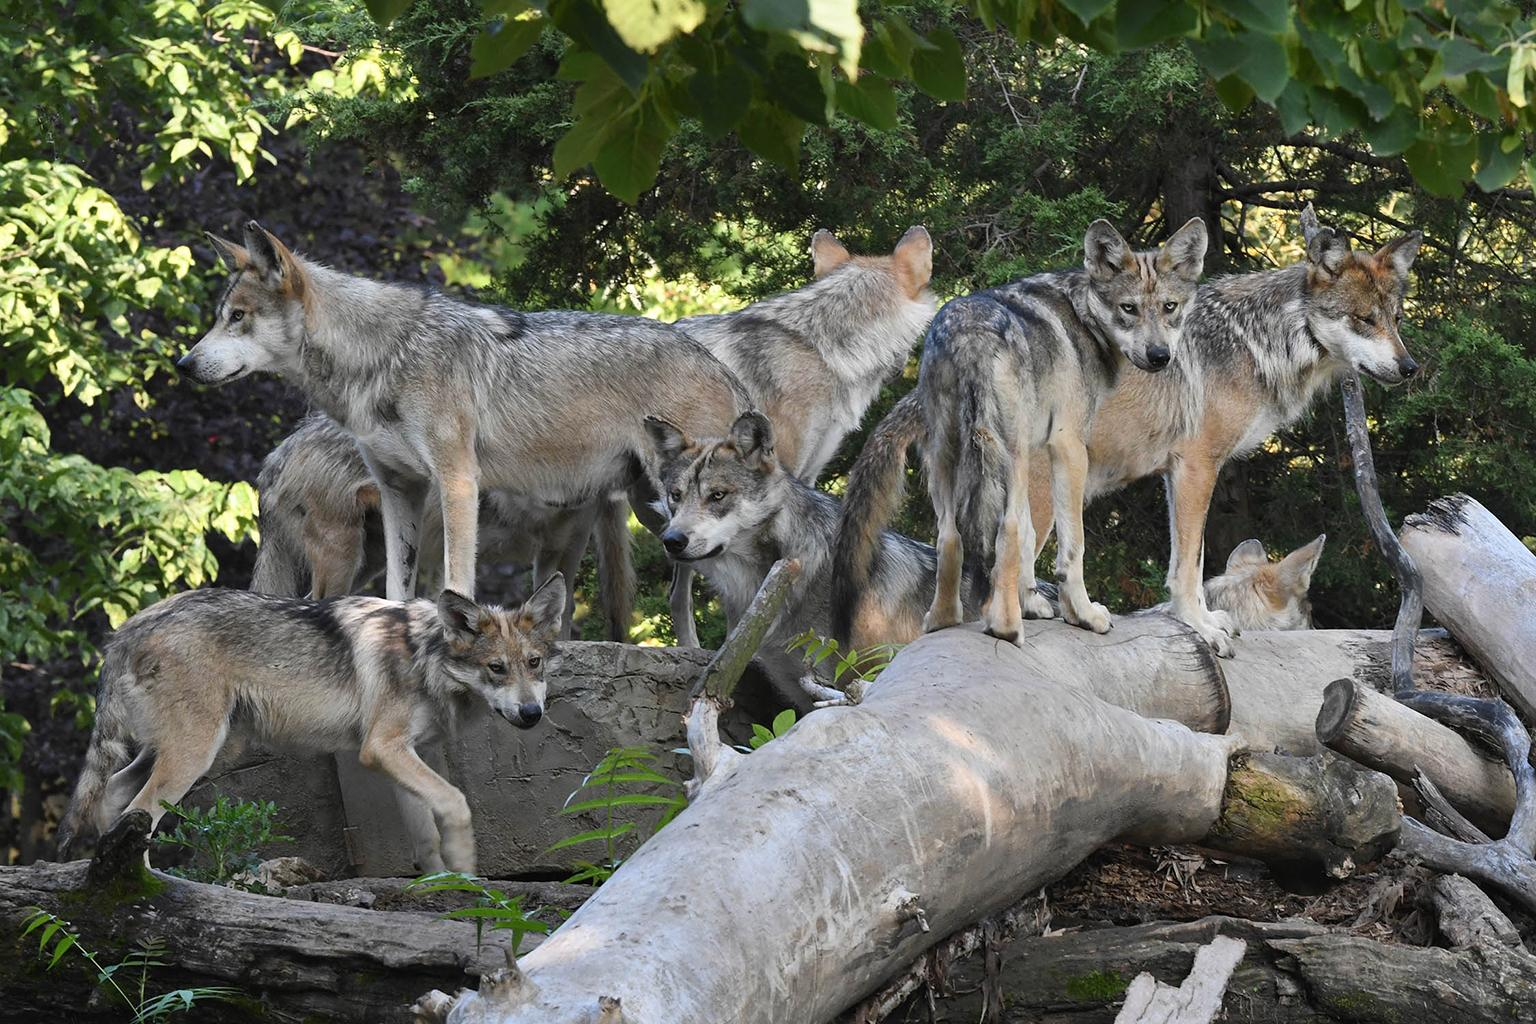 Nine of the 10 Mexican wolves currently at Brookfield Zoo will be leaving this month based on recommendations from the Association of Zoos and Aquariums' Species Survival Plan and the U.S. Fish and Wildlife Service's Mexican Wolf Recovery Program. (Jim Schulz / Chicago Zoological Society)